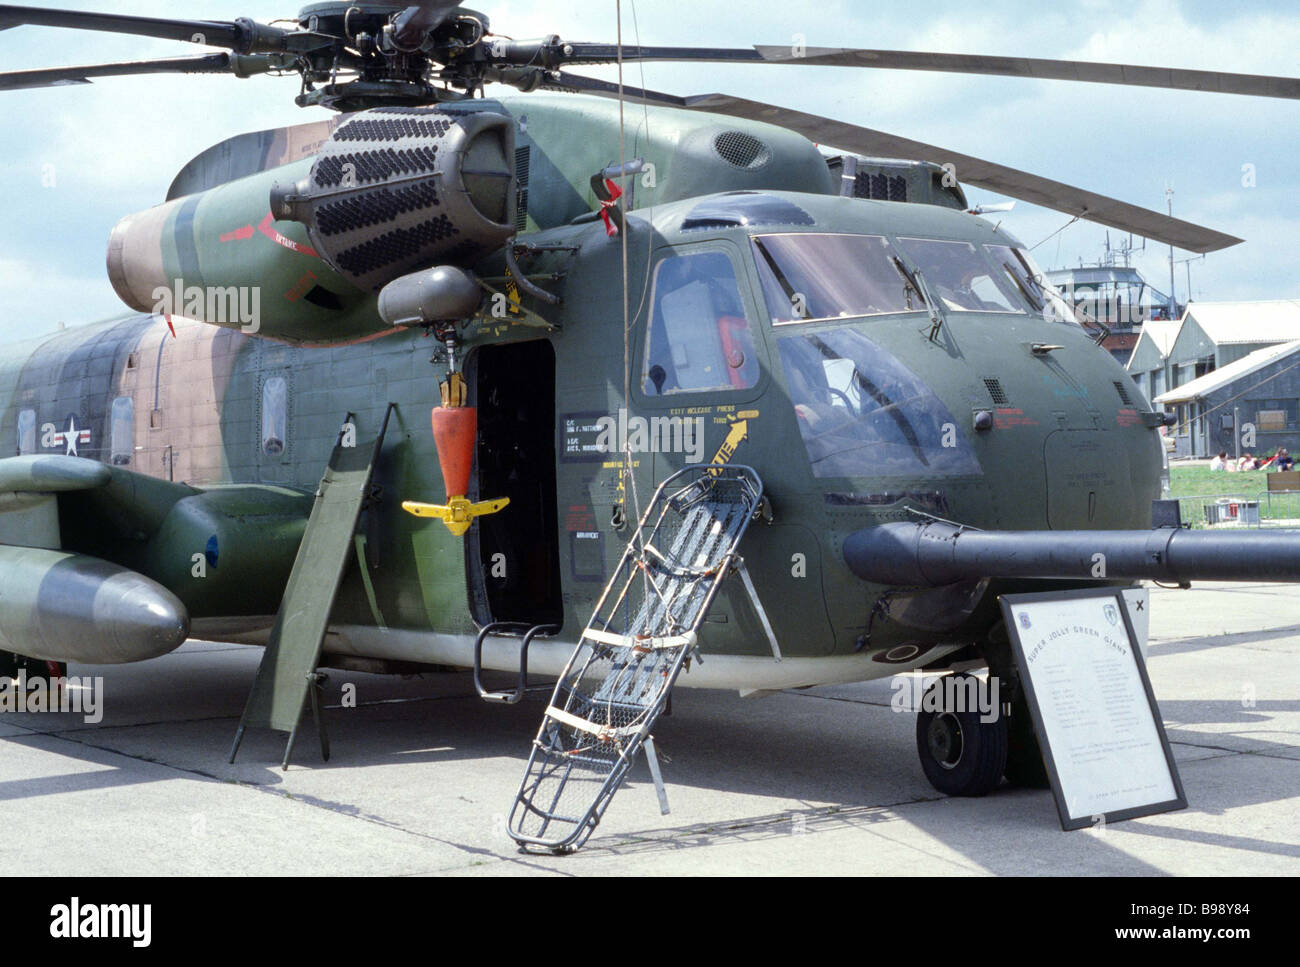 Sikorsky HH-53 Super Jolly Green Giant helicopter - Stock Image